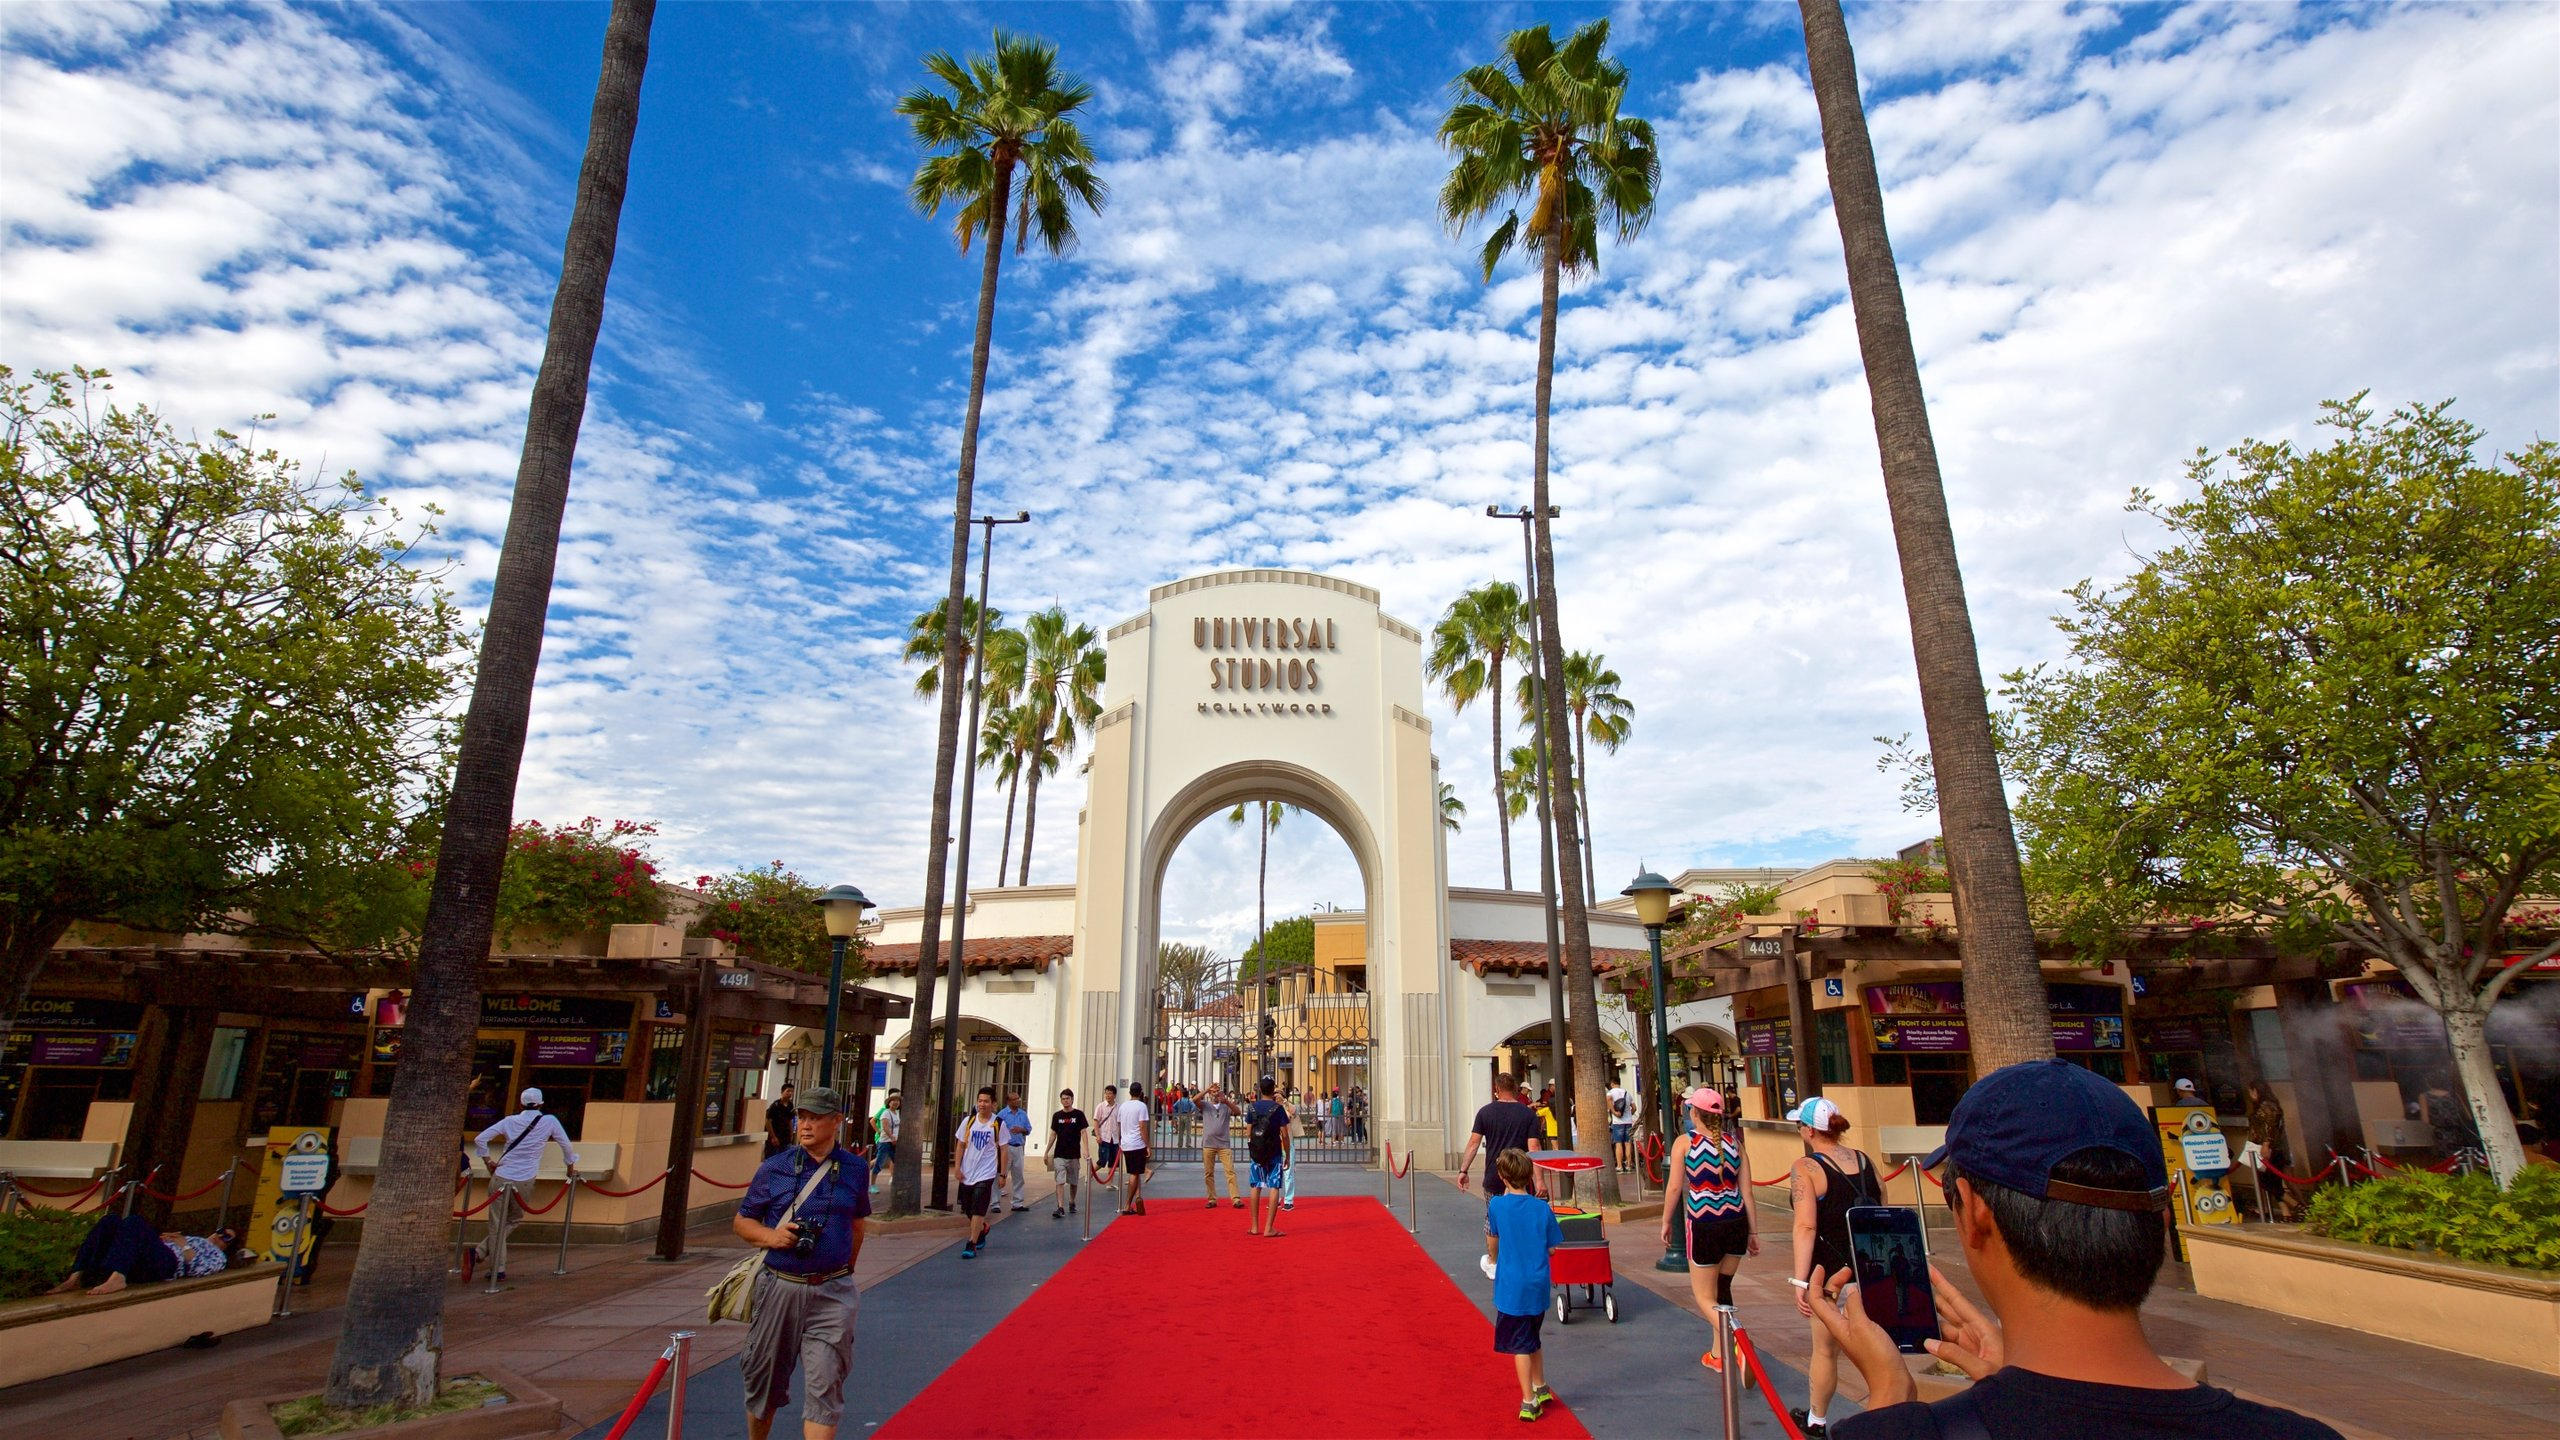 The Best Hotels Closest To Universal Citywalk 2020 Updated